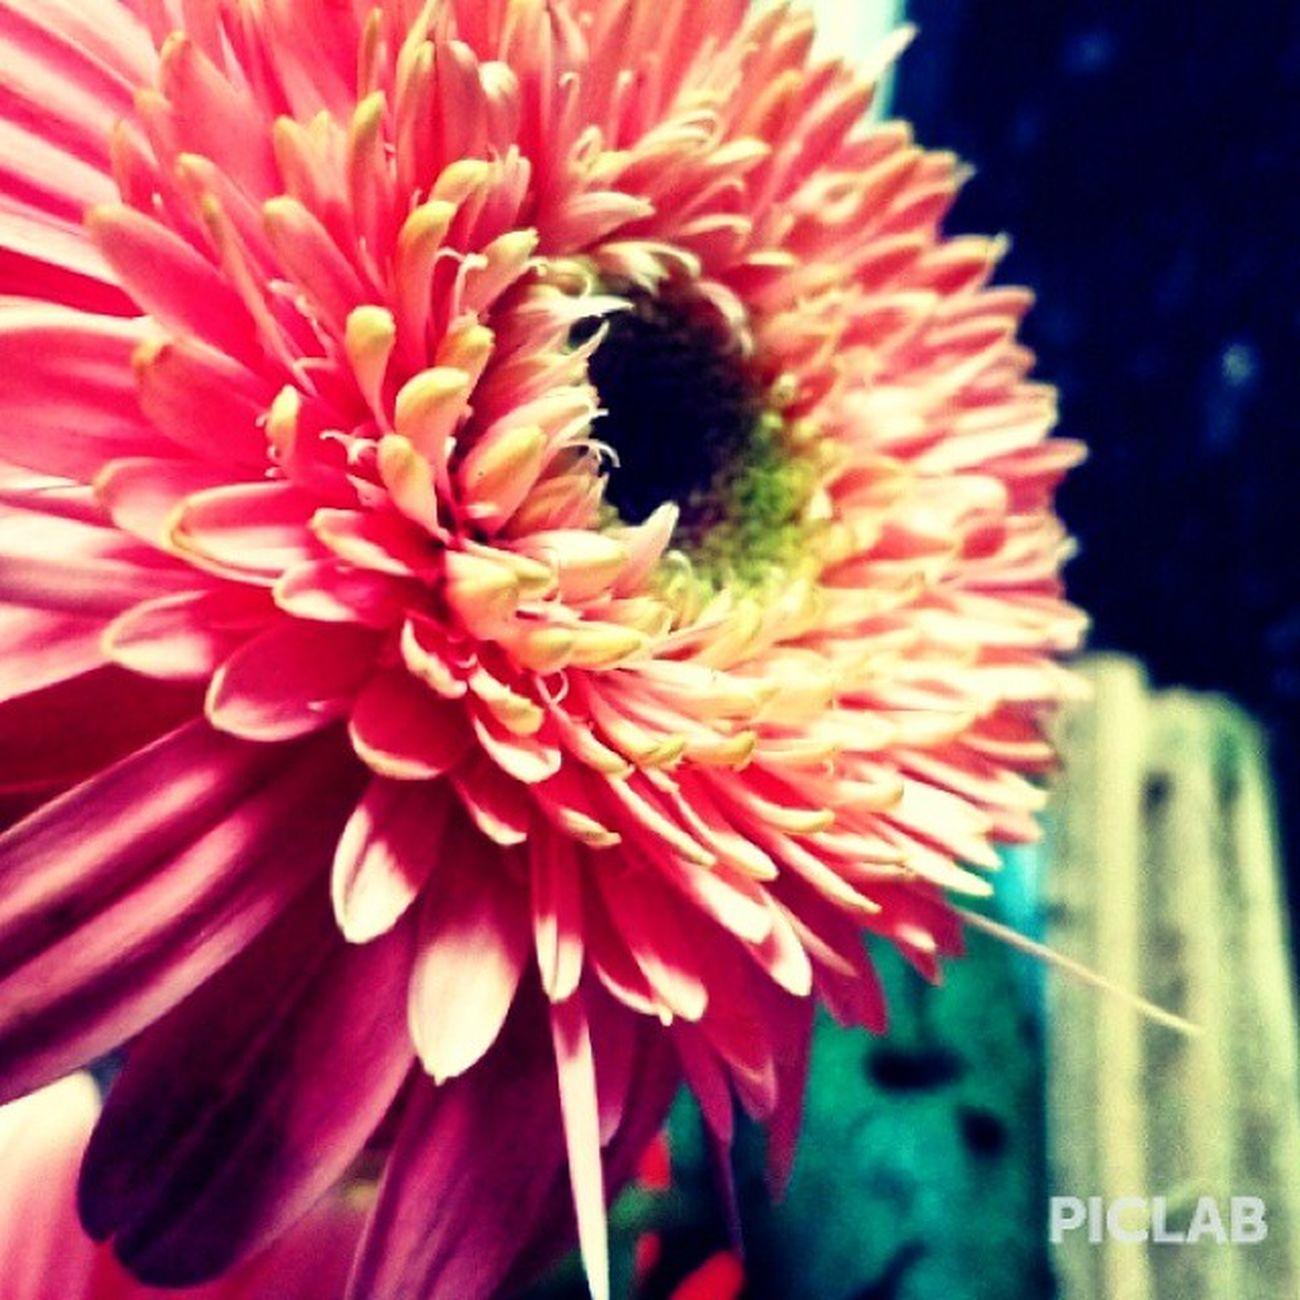 Learn to bloom from the flower. Learn to spread happiness around yourself to the people , so that the positivity can bring the same visual delight to people that they experience merely by looking at a flower. Be that sweet fruit in life that everyone would want to taste just as everyone wants to smell the aroma of a beautiful flower. Flower Delightful Igers Piclab Igersphotography Latergram Lovelymorning